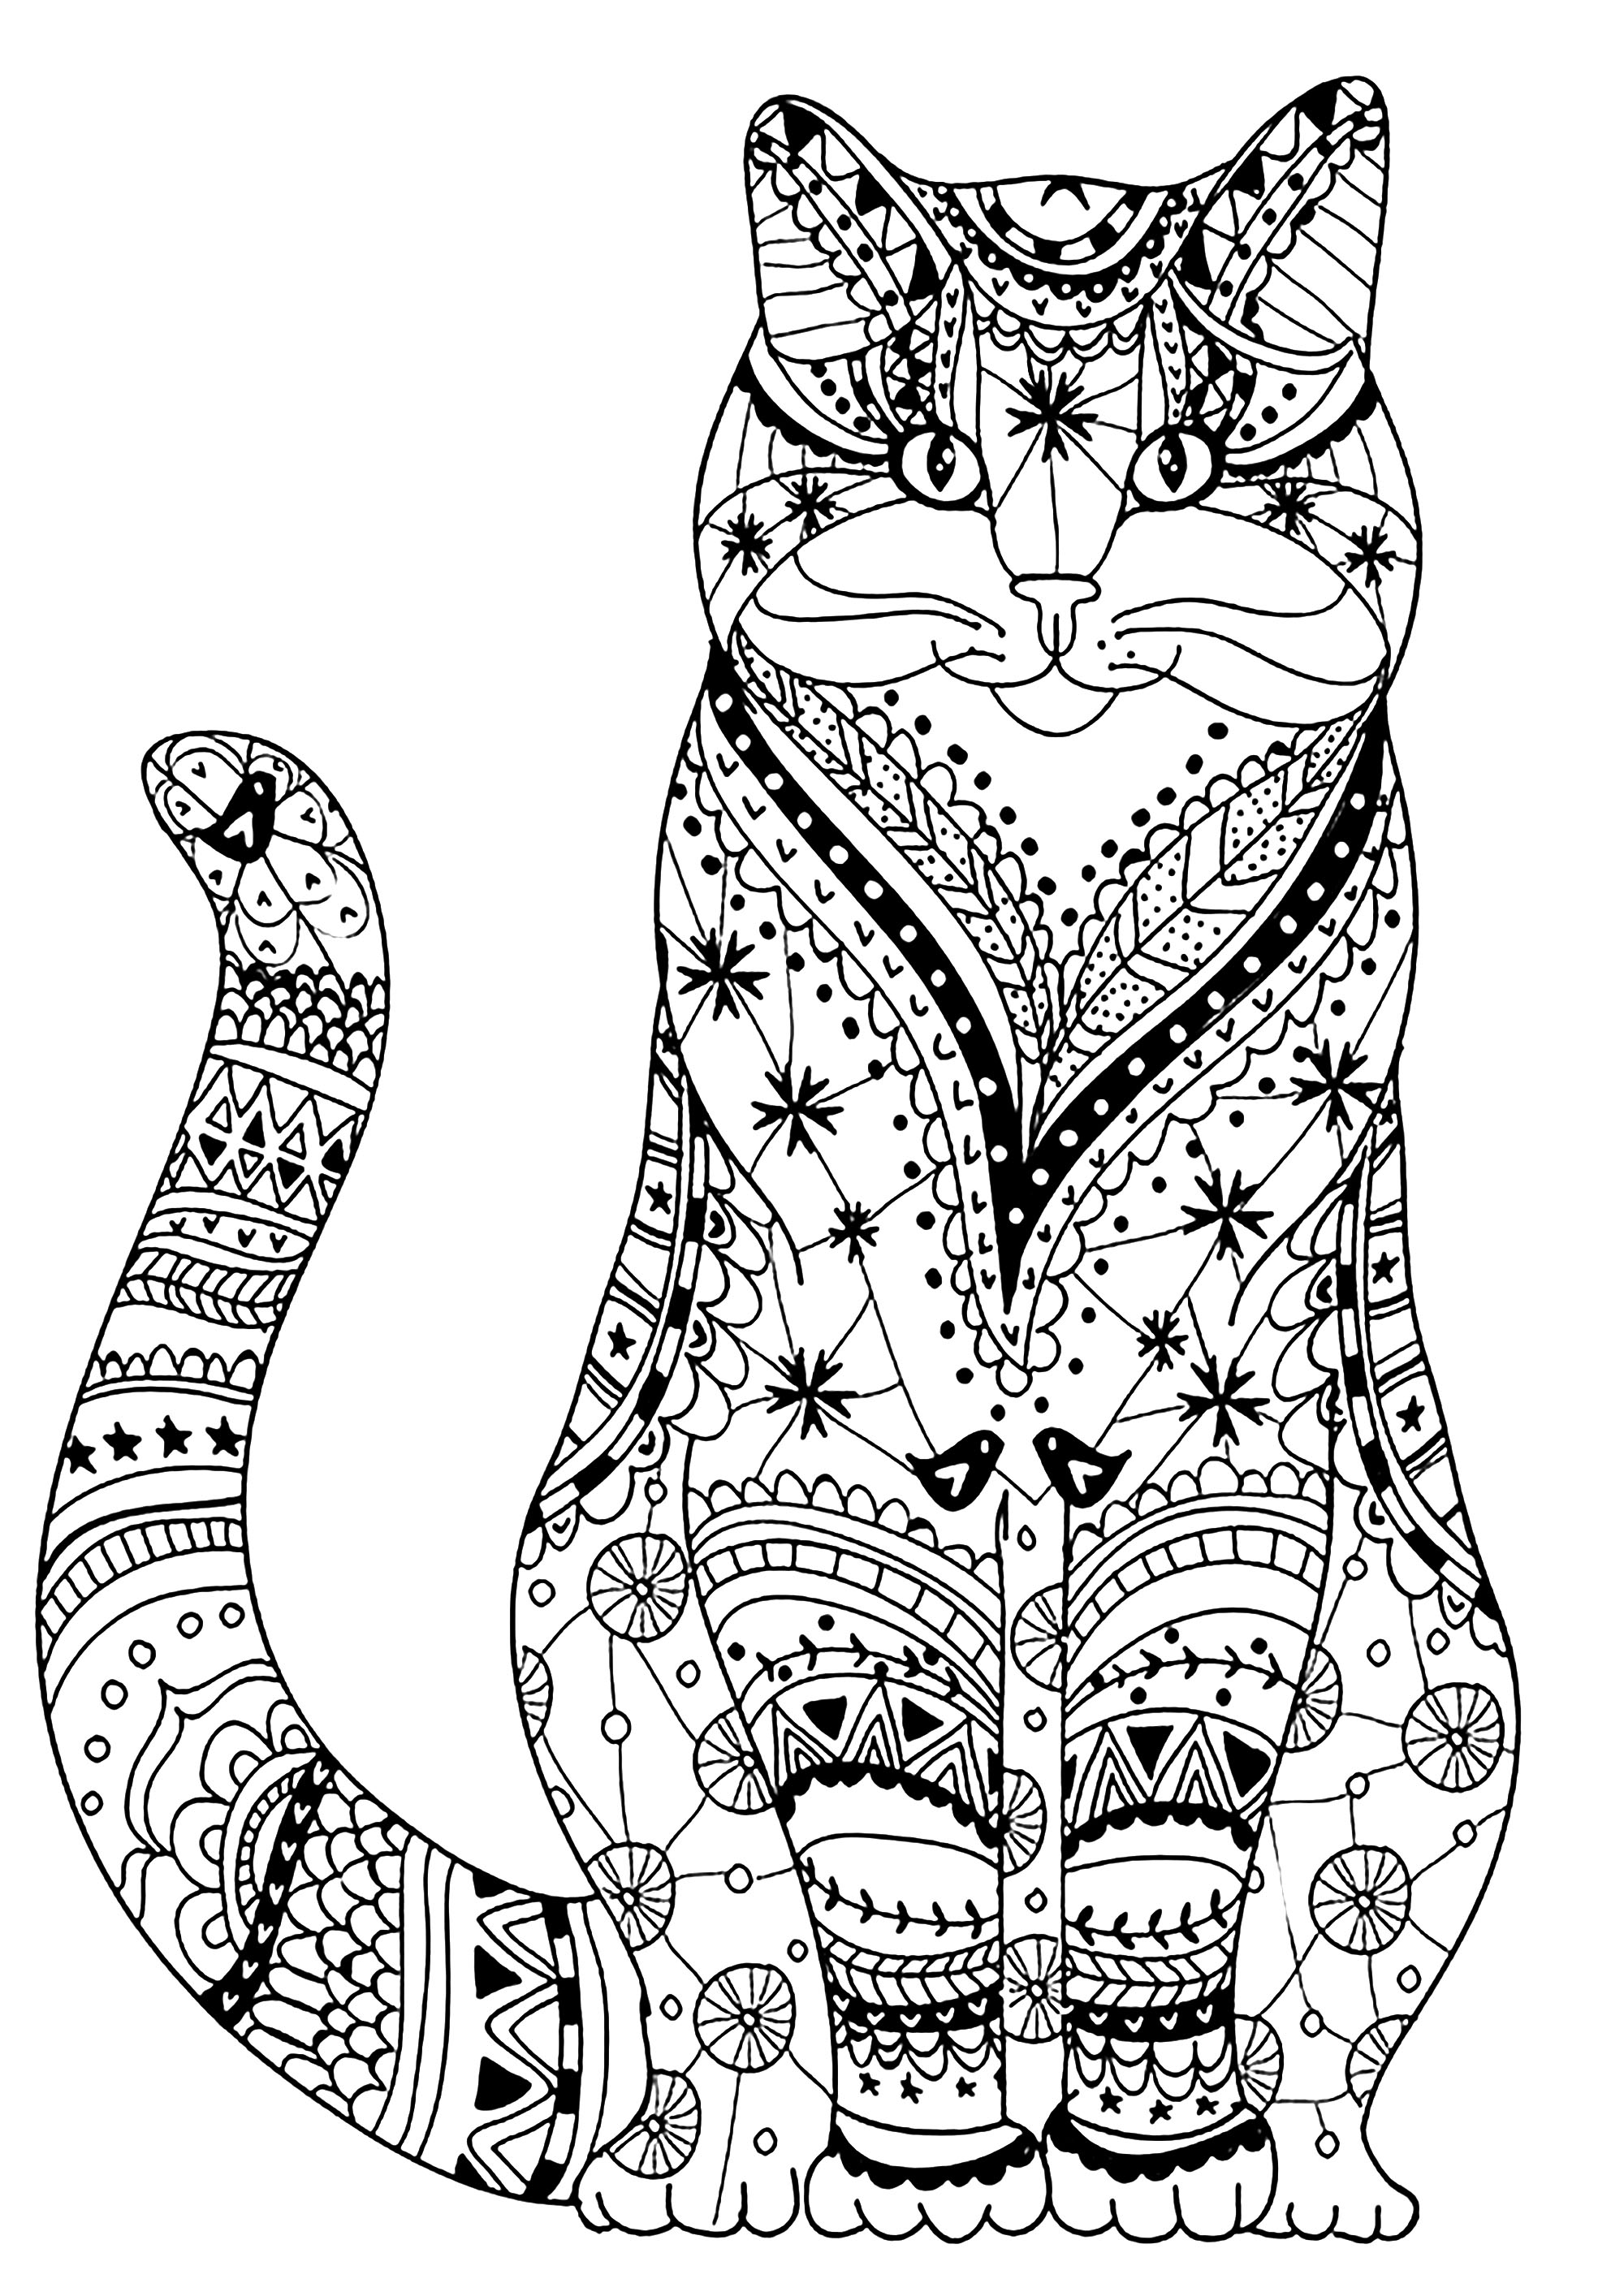 coloring cat pages very wise cat cats adult coloring pages cat coloring pages